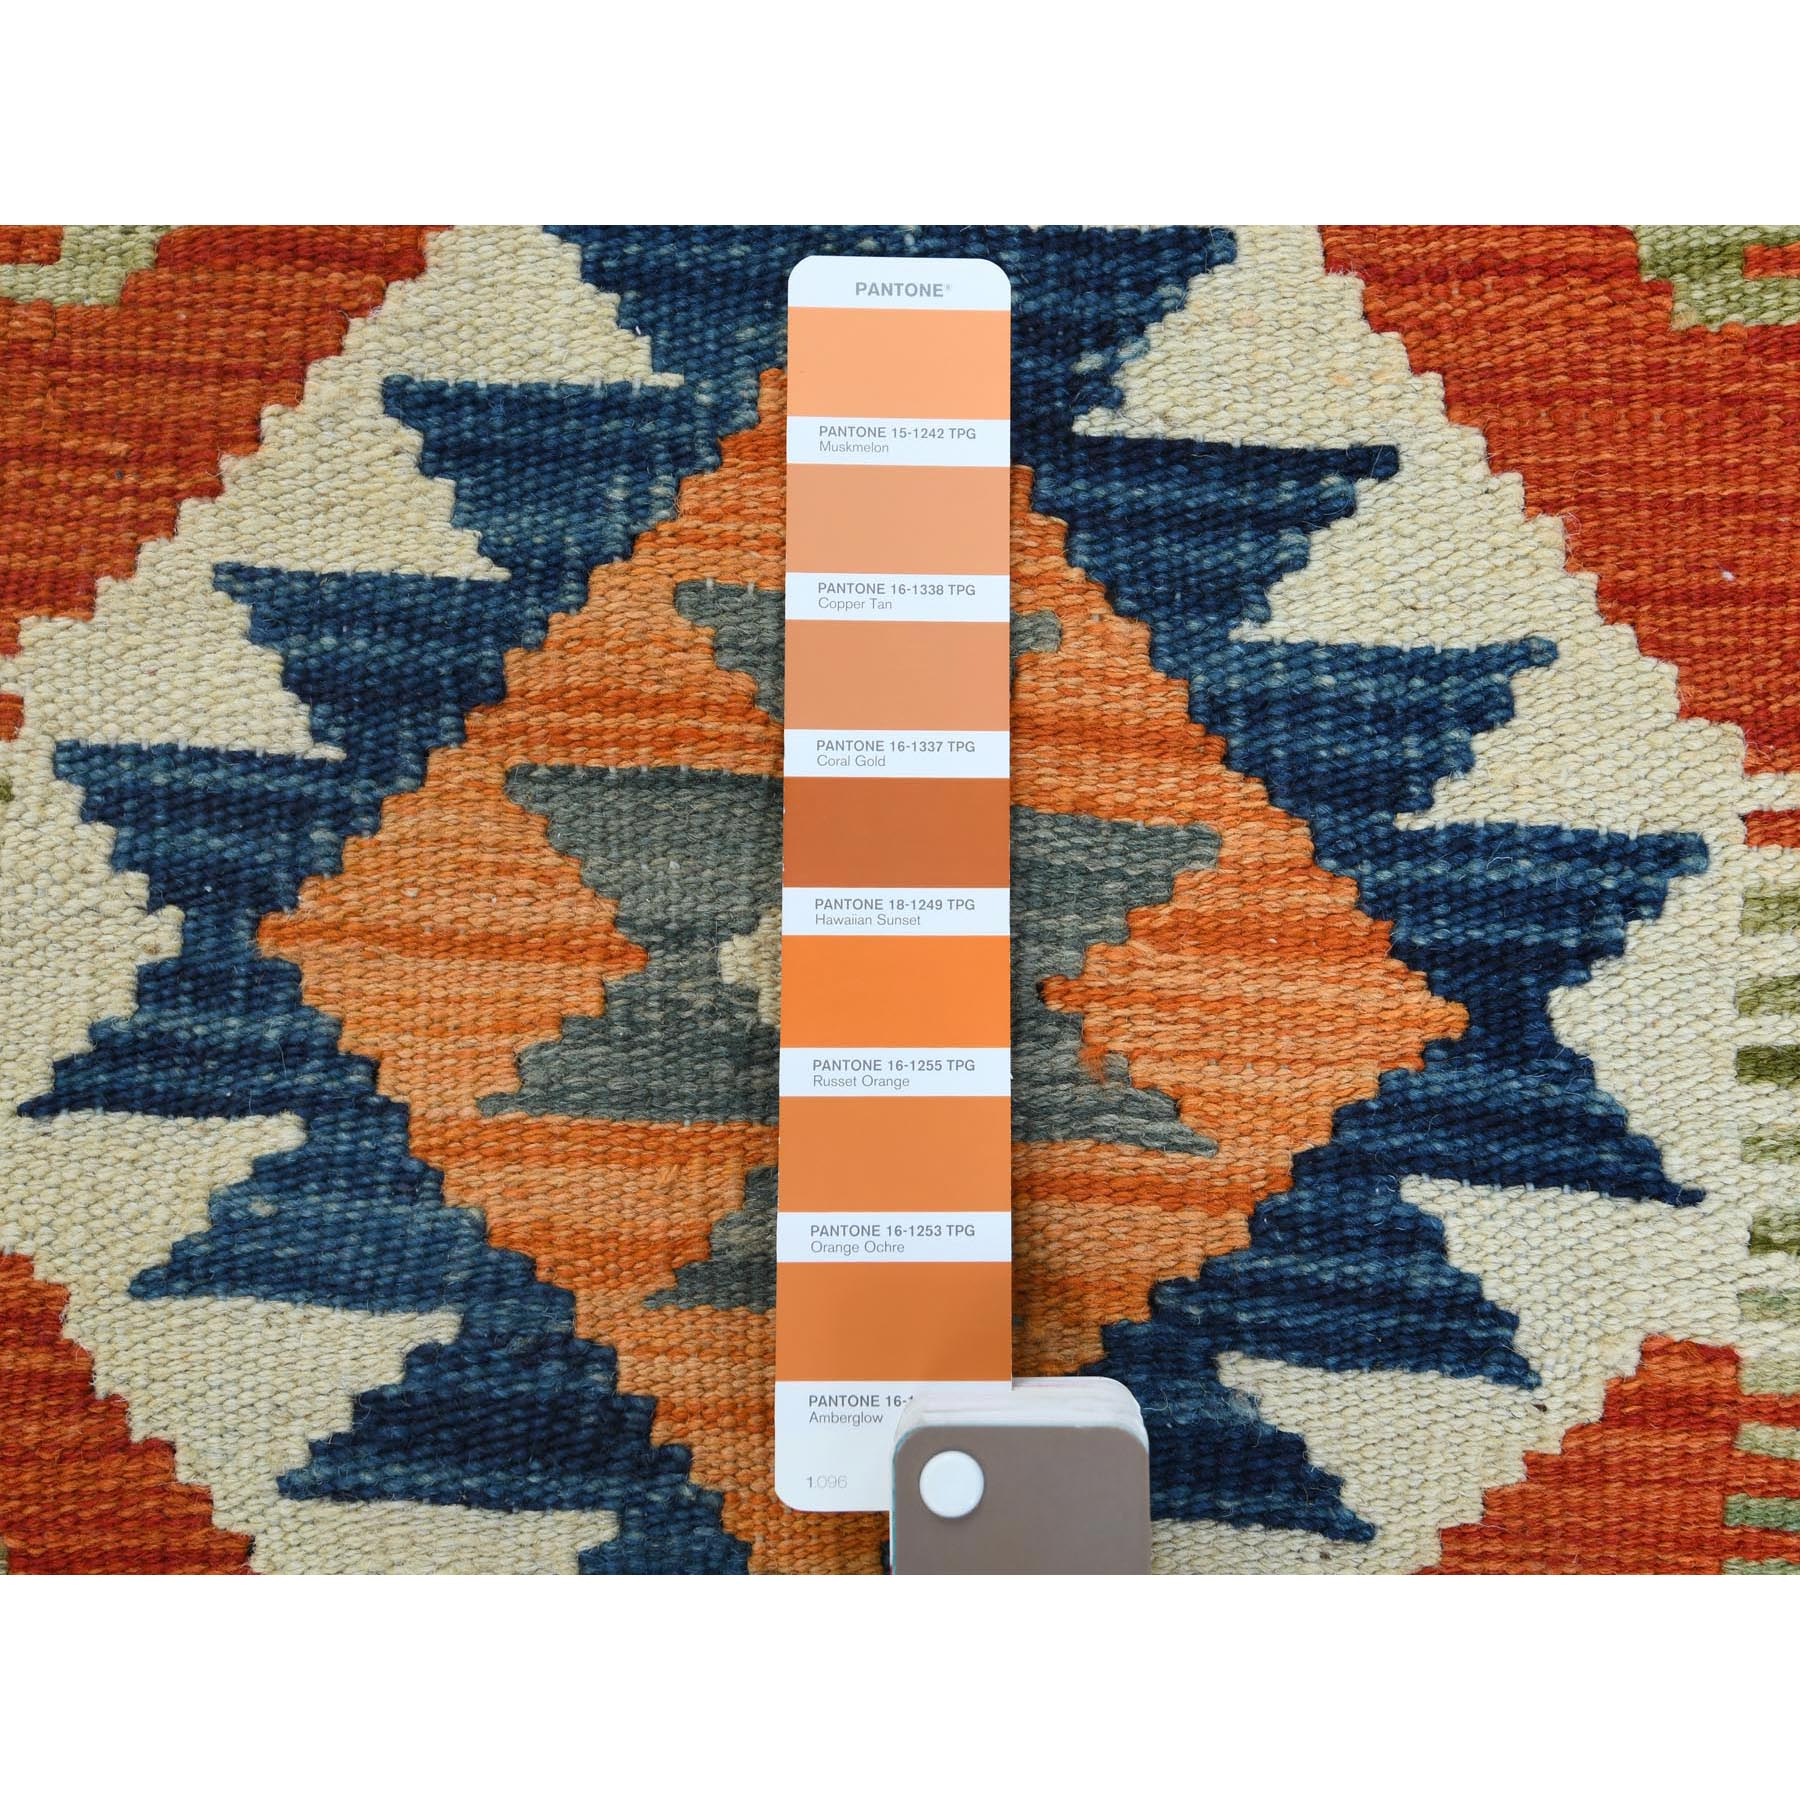 2'x3' Orange Afghan Kilim In A Colorful Palette Vibrant Wool Hand Woven Reversible Runner Oriental Rug